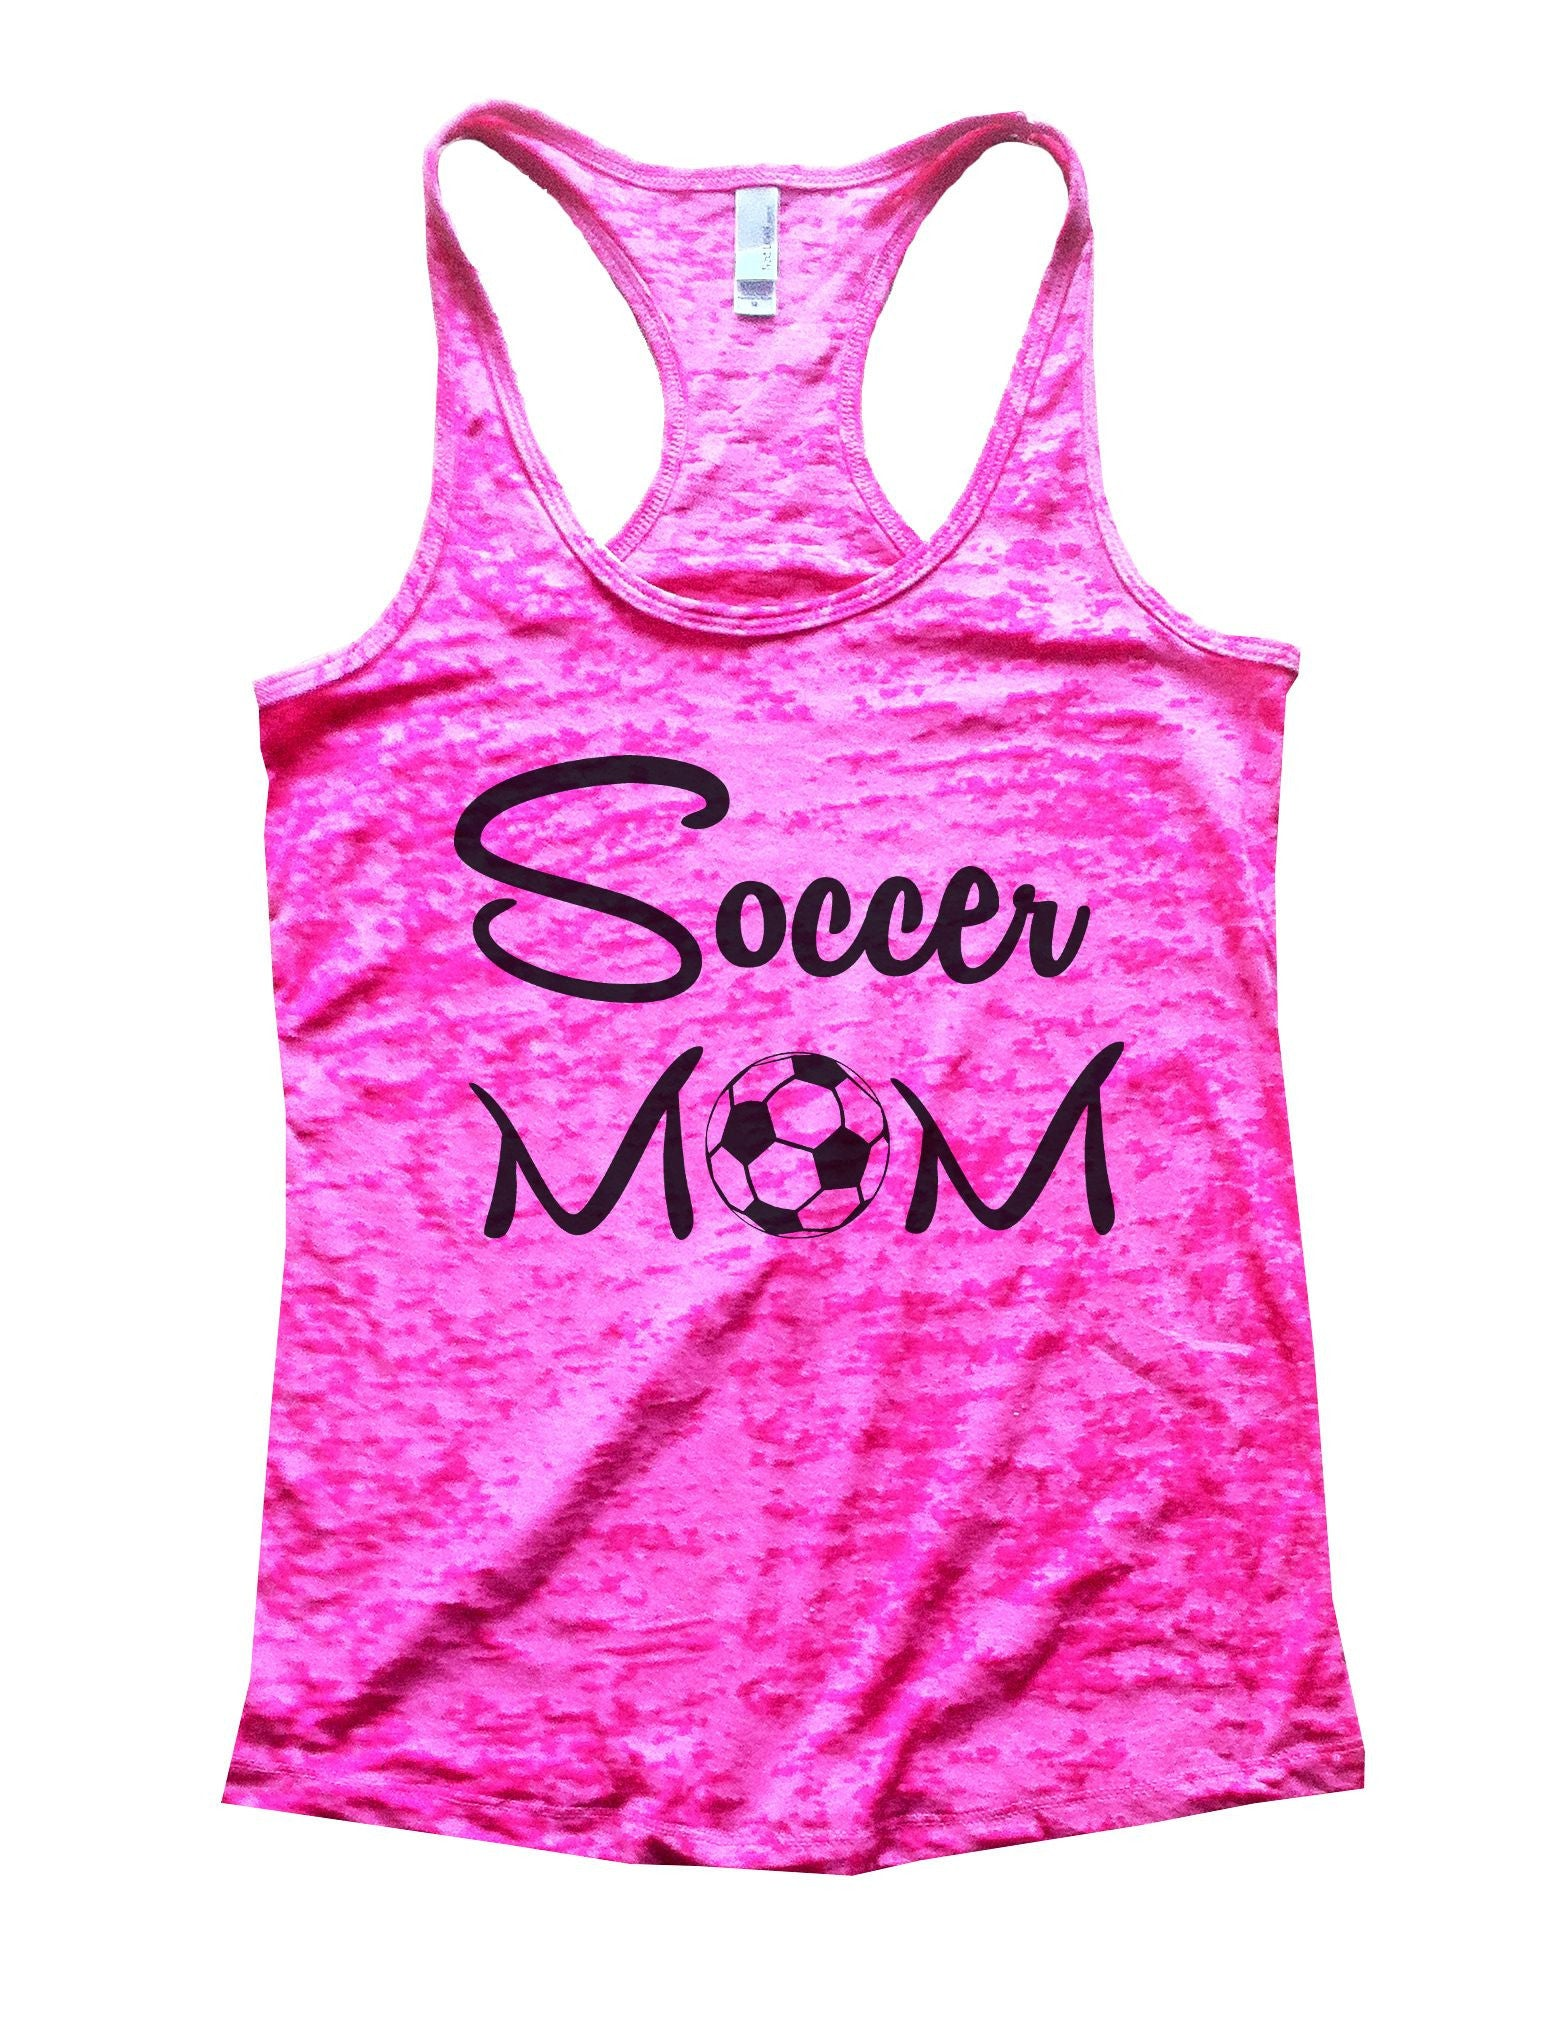 Soccer Mom Burnout Tank Top By BurnoutTankTops.com - 658 - Funny Shirts Tank Tops Burnouts and Triblends  - 5